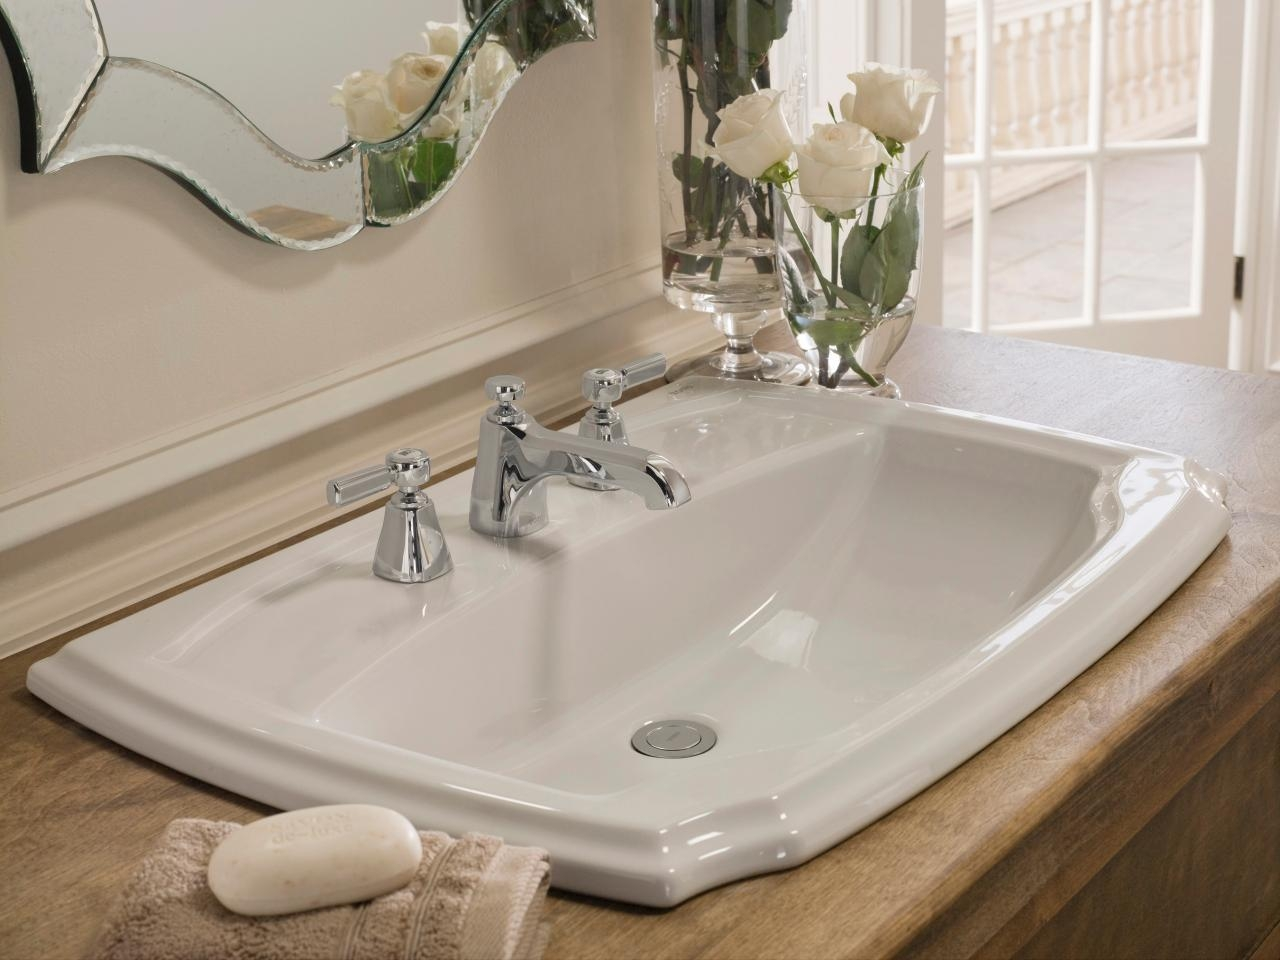 Ideas, best bathroom faucets ultimate guide reviews 2017 within dimensions 1280 x 960 jpeg.